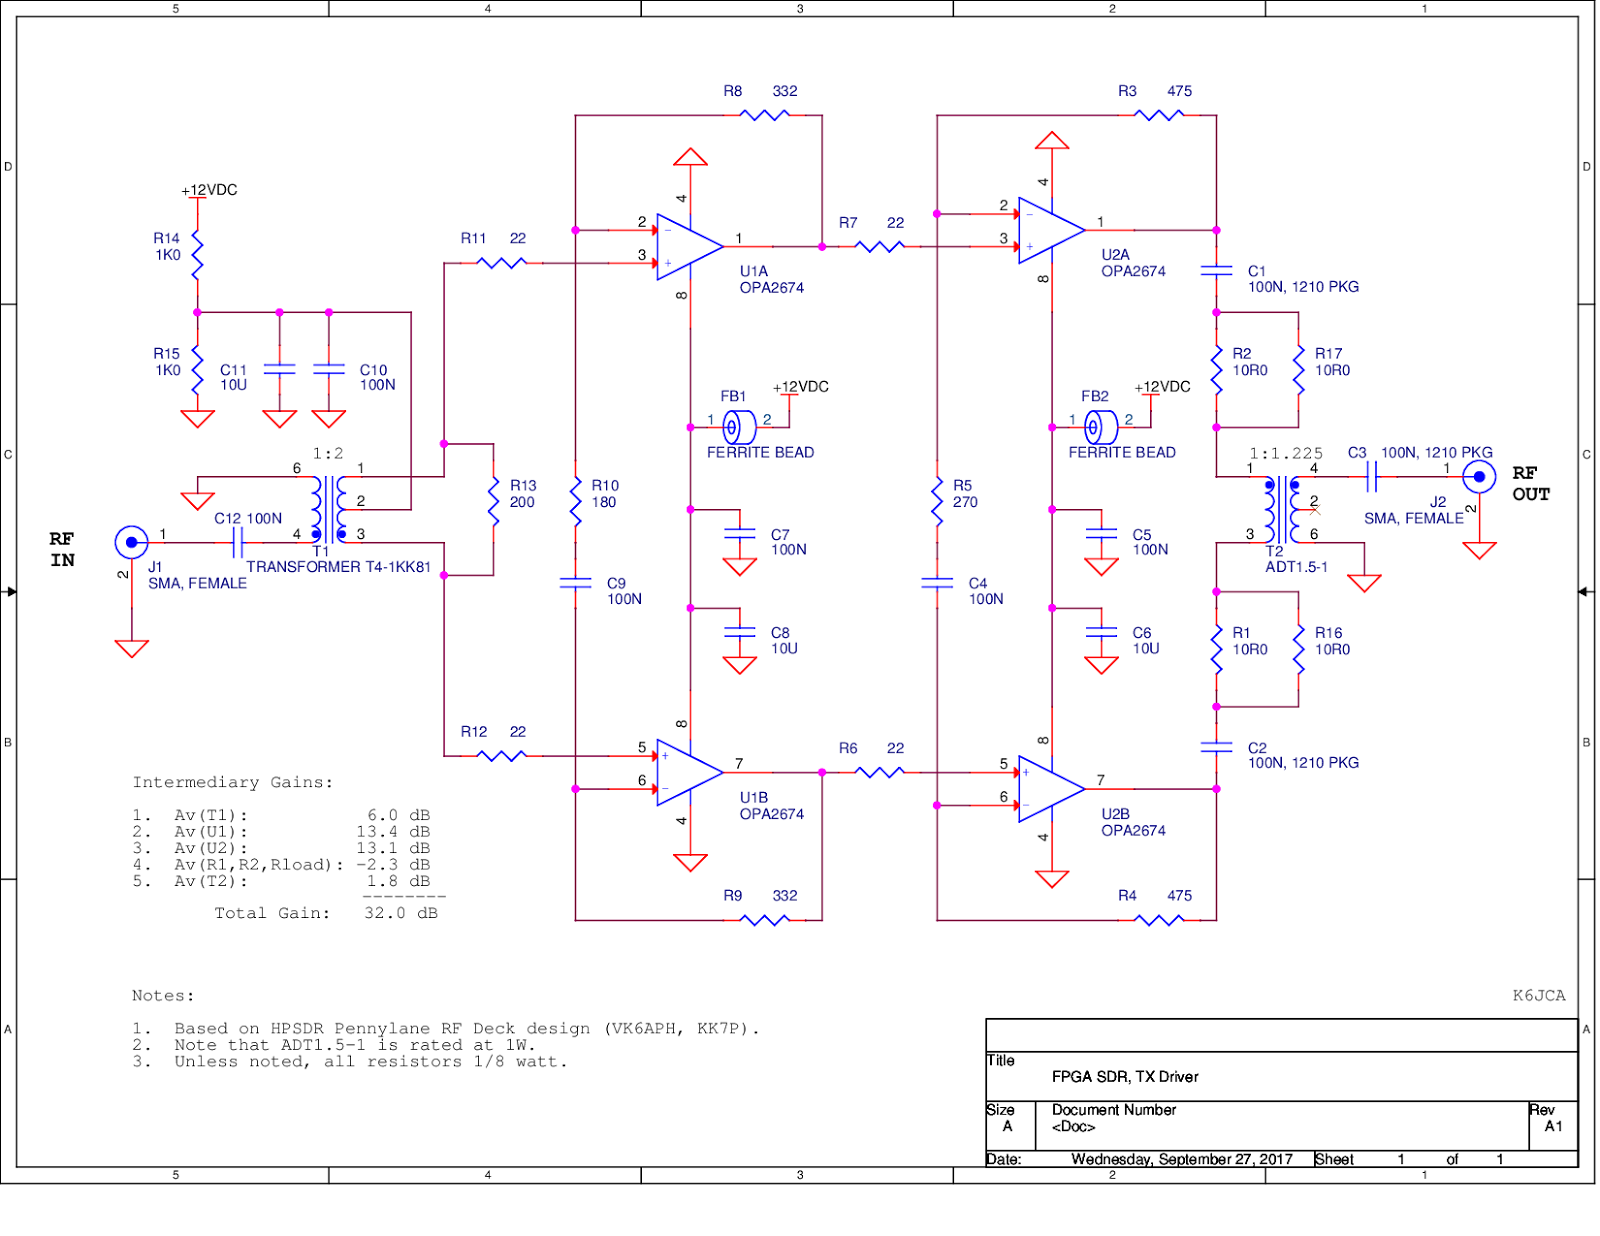 K6jca an fpga sdr hf transceiver part 9 a 50 db hf rf power notes on pa driver schematic nvjuhfo Image collections